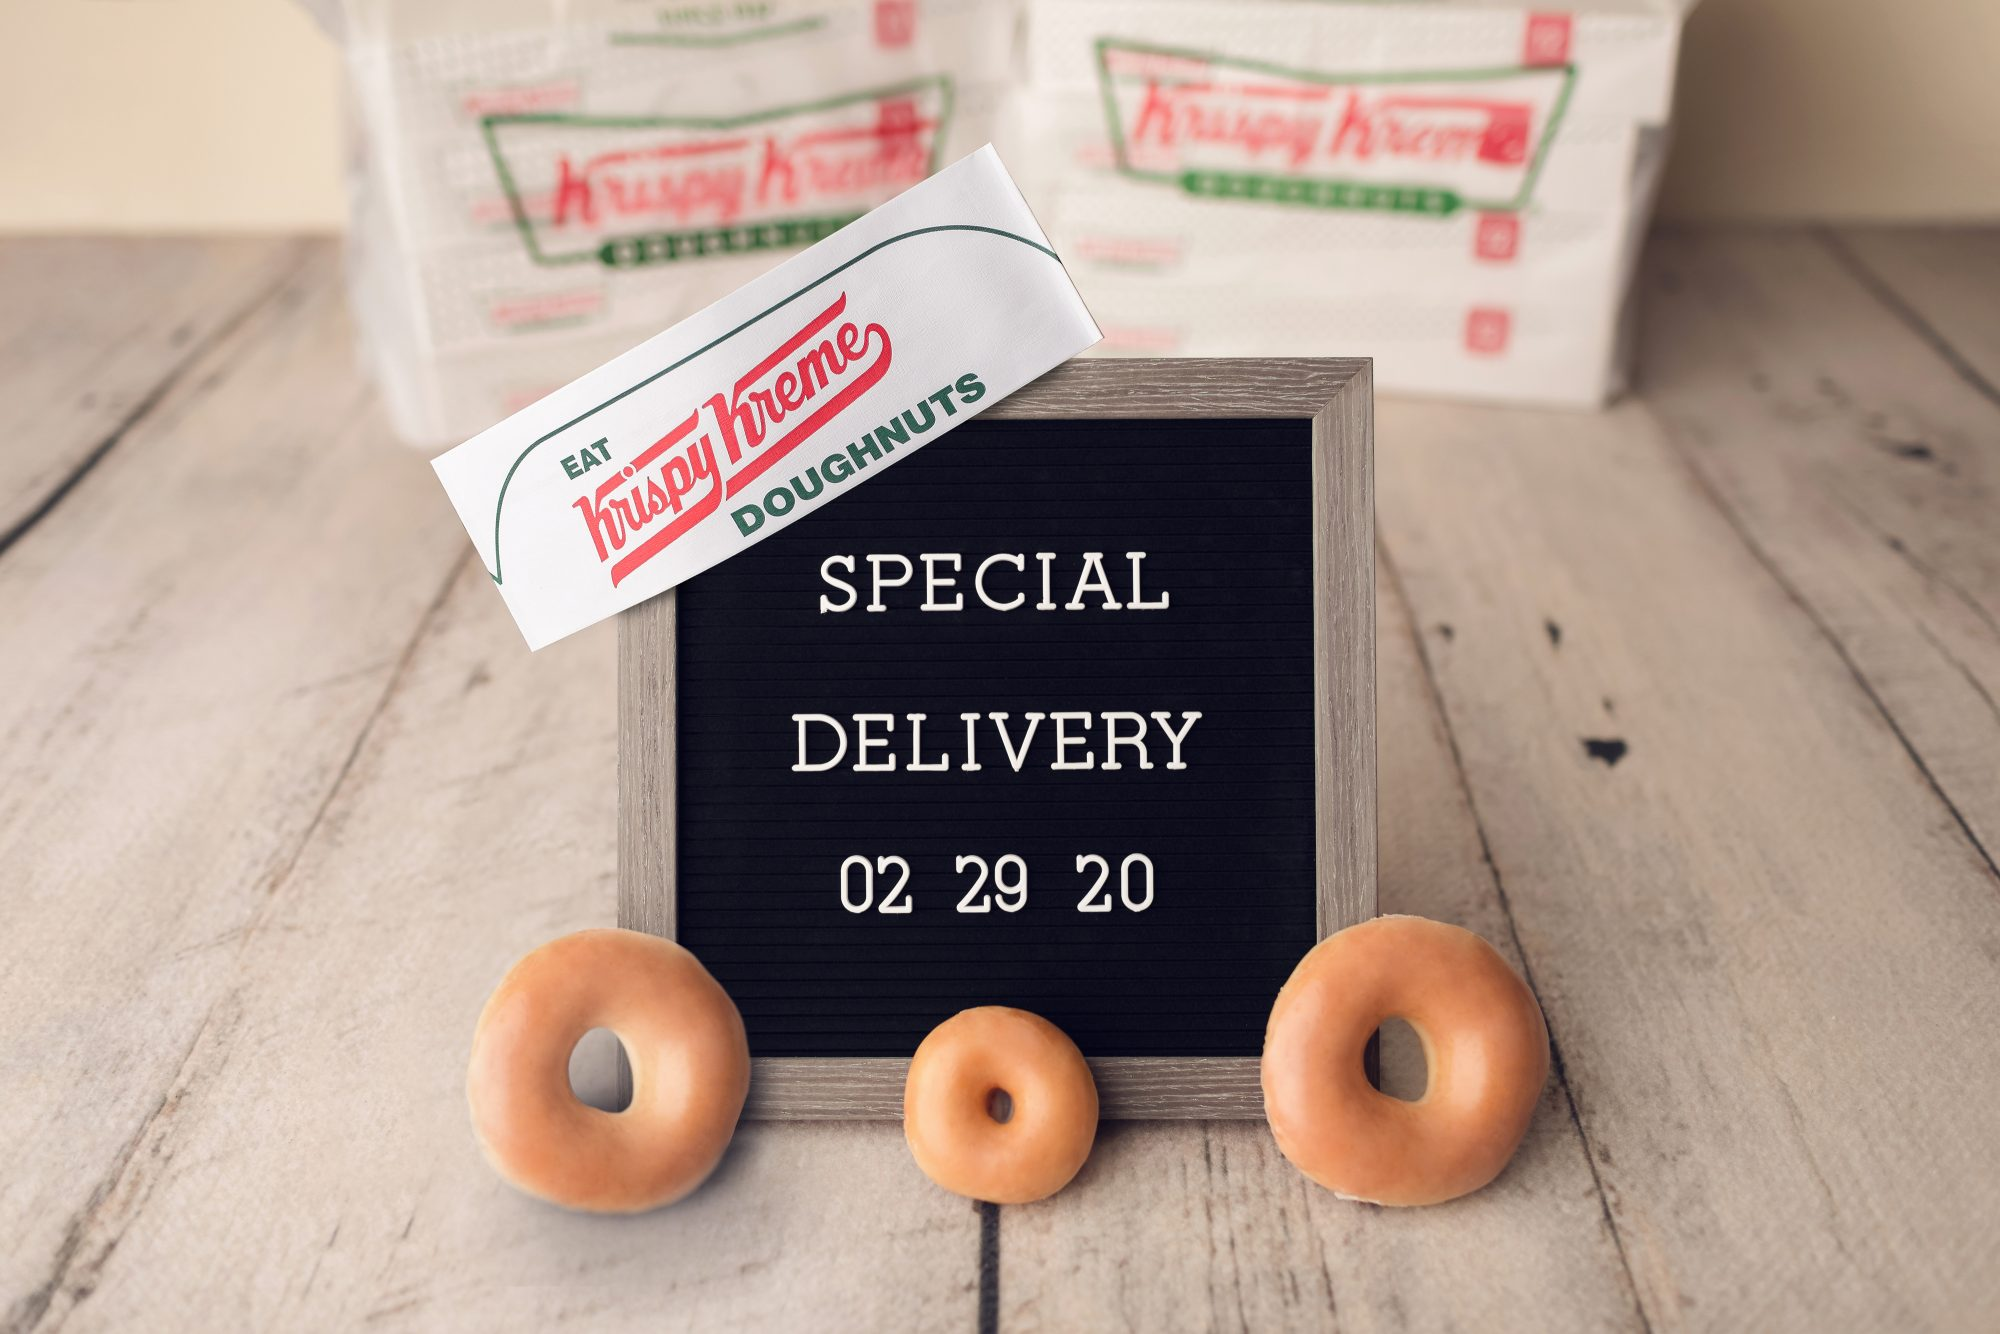 Krispy Kreme Is Launching a Doughnut Delivery Service This Weekend So You Don't Have to Leave the House